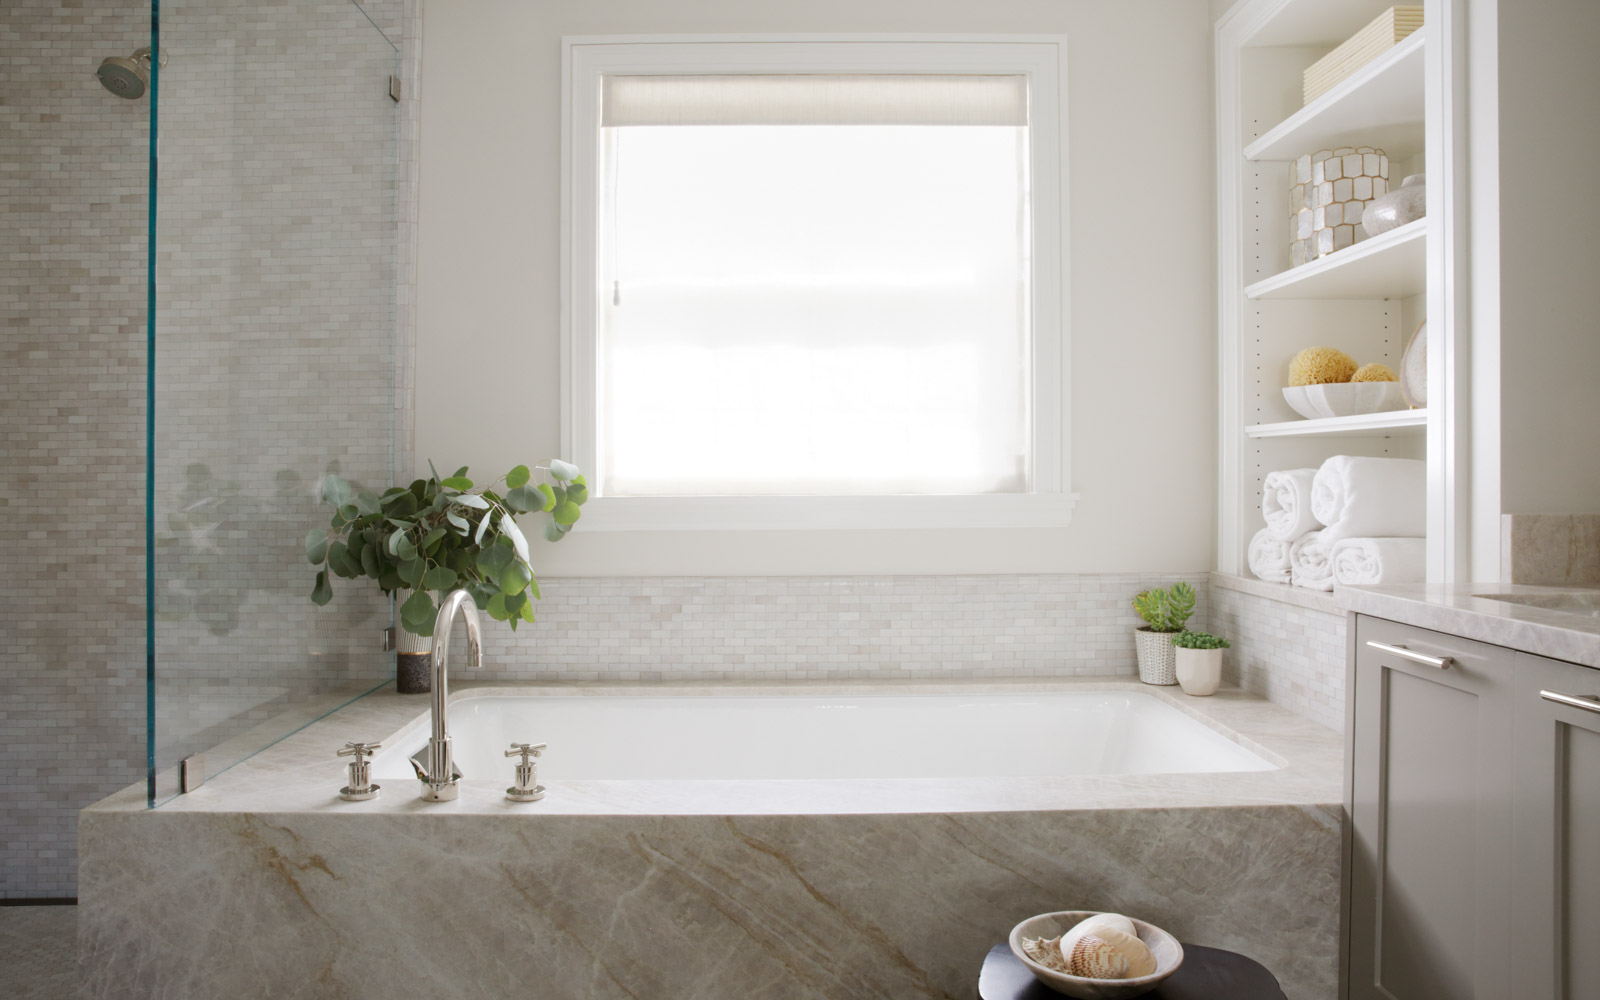 Taj Mahal stone bathtub surround